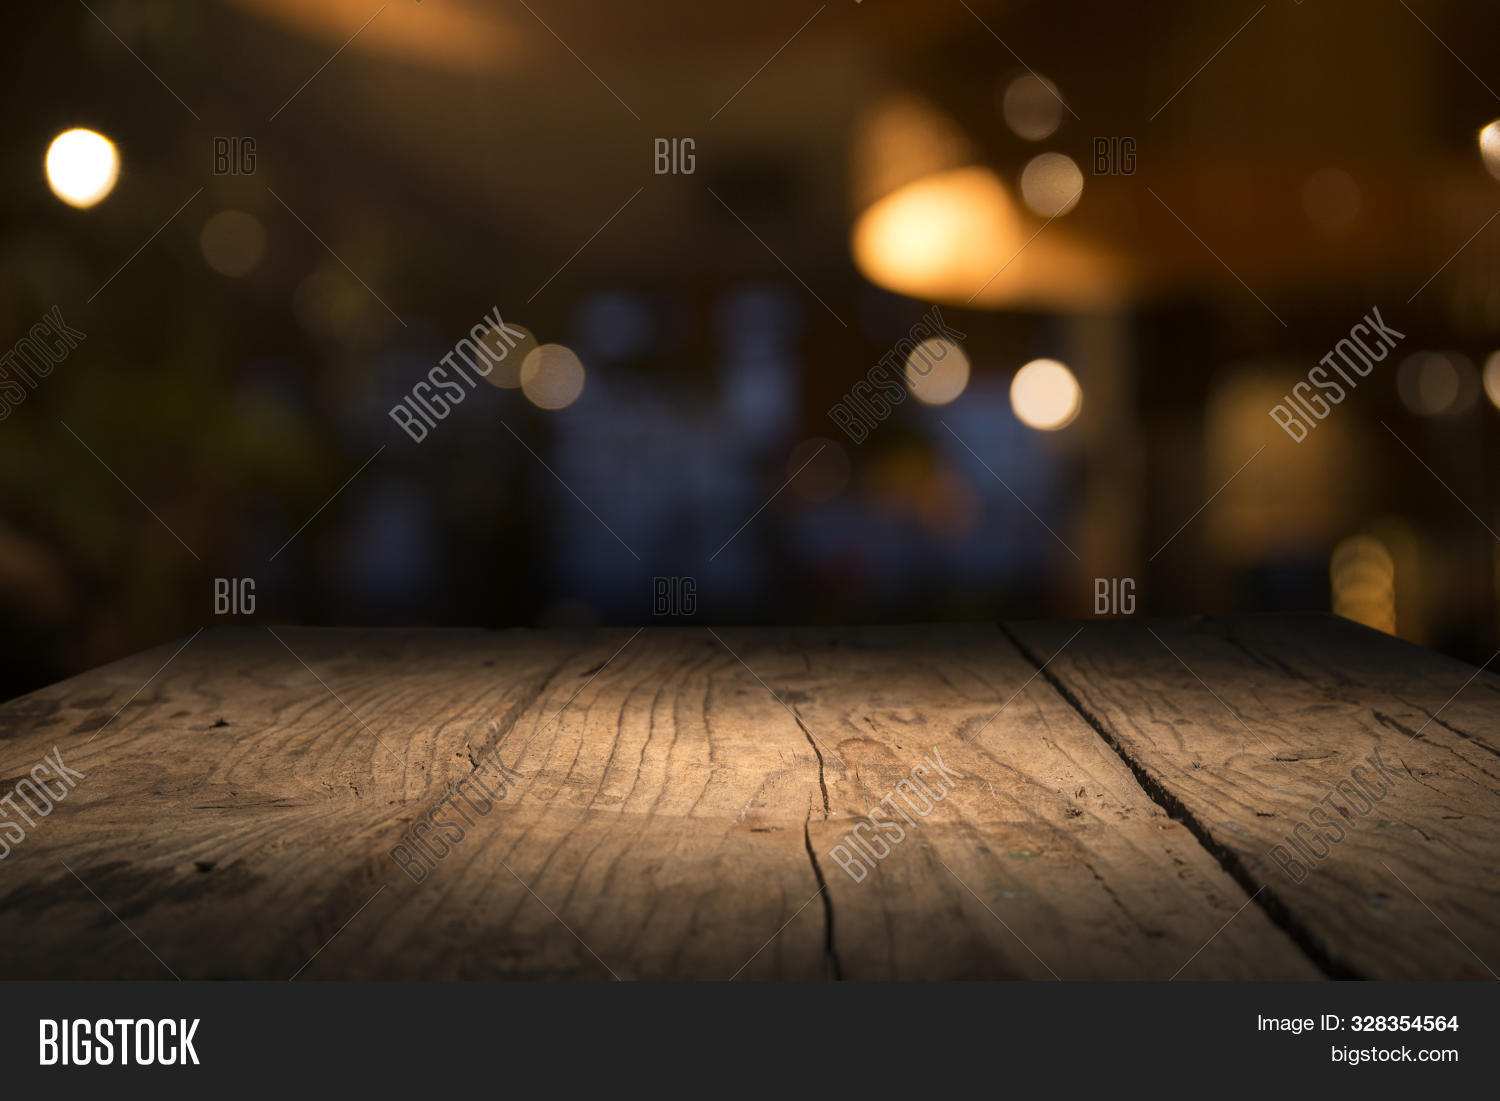 Empty Wood Table Top Image Photo Free Trial Bigstock